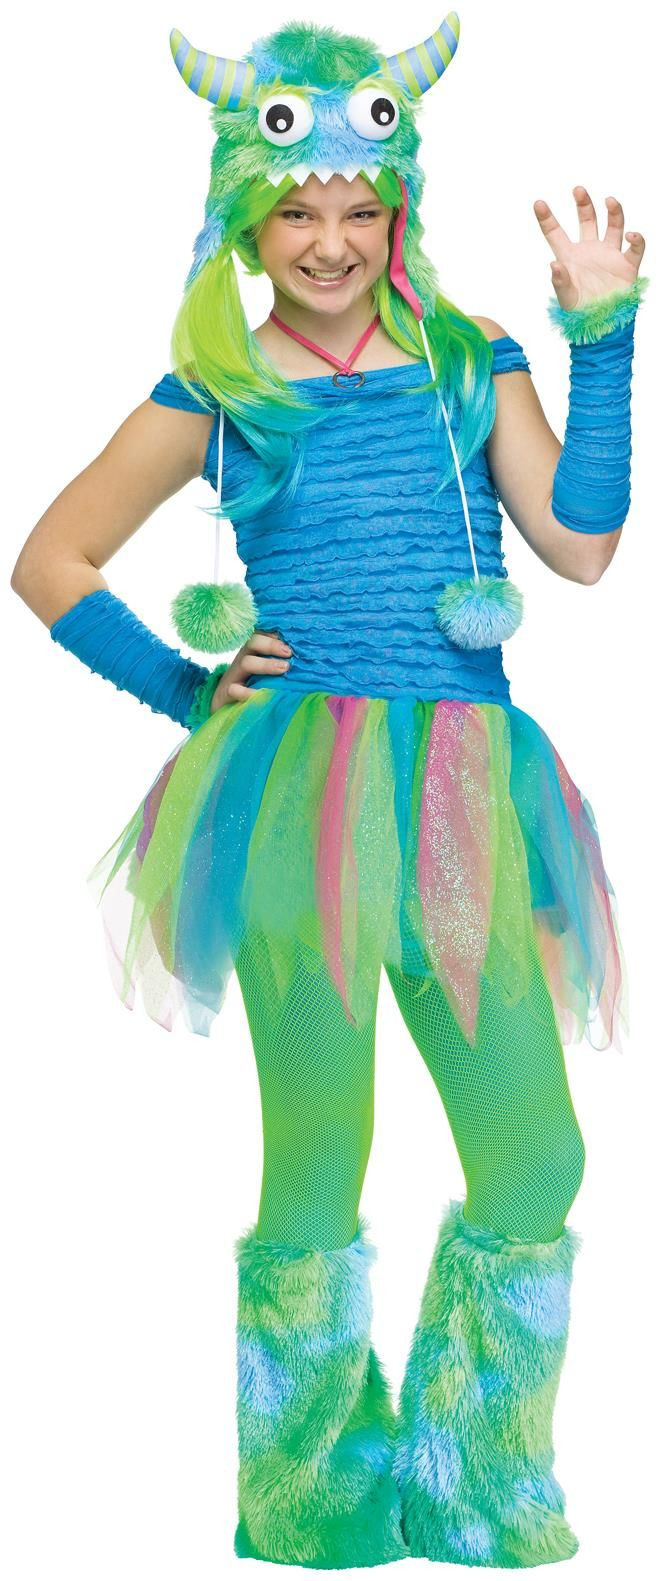 52 best cute halloween costumes images on Pinterest